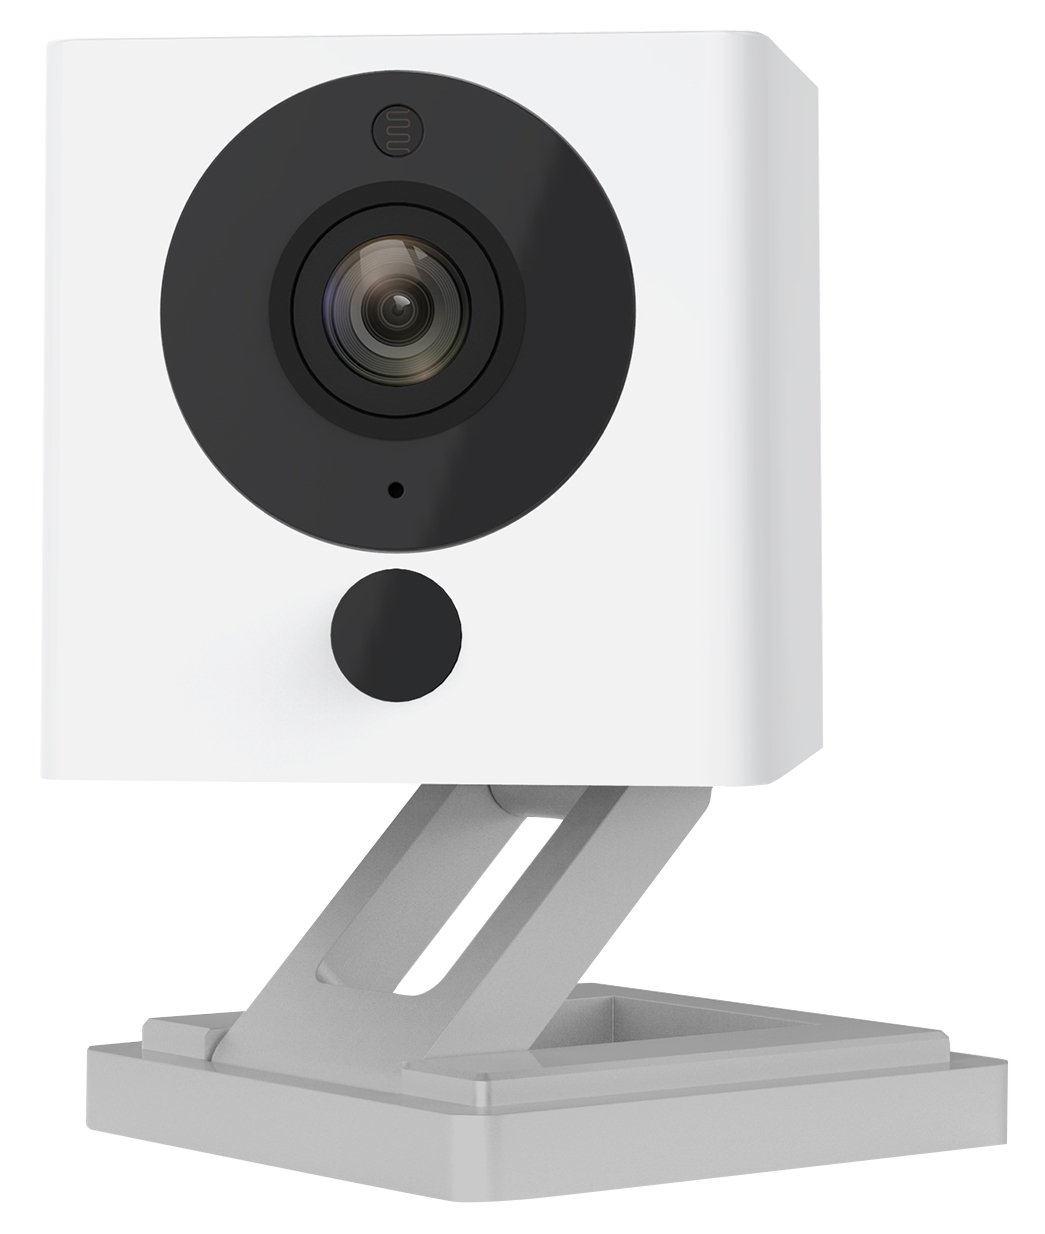 Wyze Cam 1080p HD Indoor Wireless Smart Home Camera with Night Vision, 2-Way Audio, Person Detection, Works with Alexa & the Google Assistant by Wyze Labs